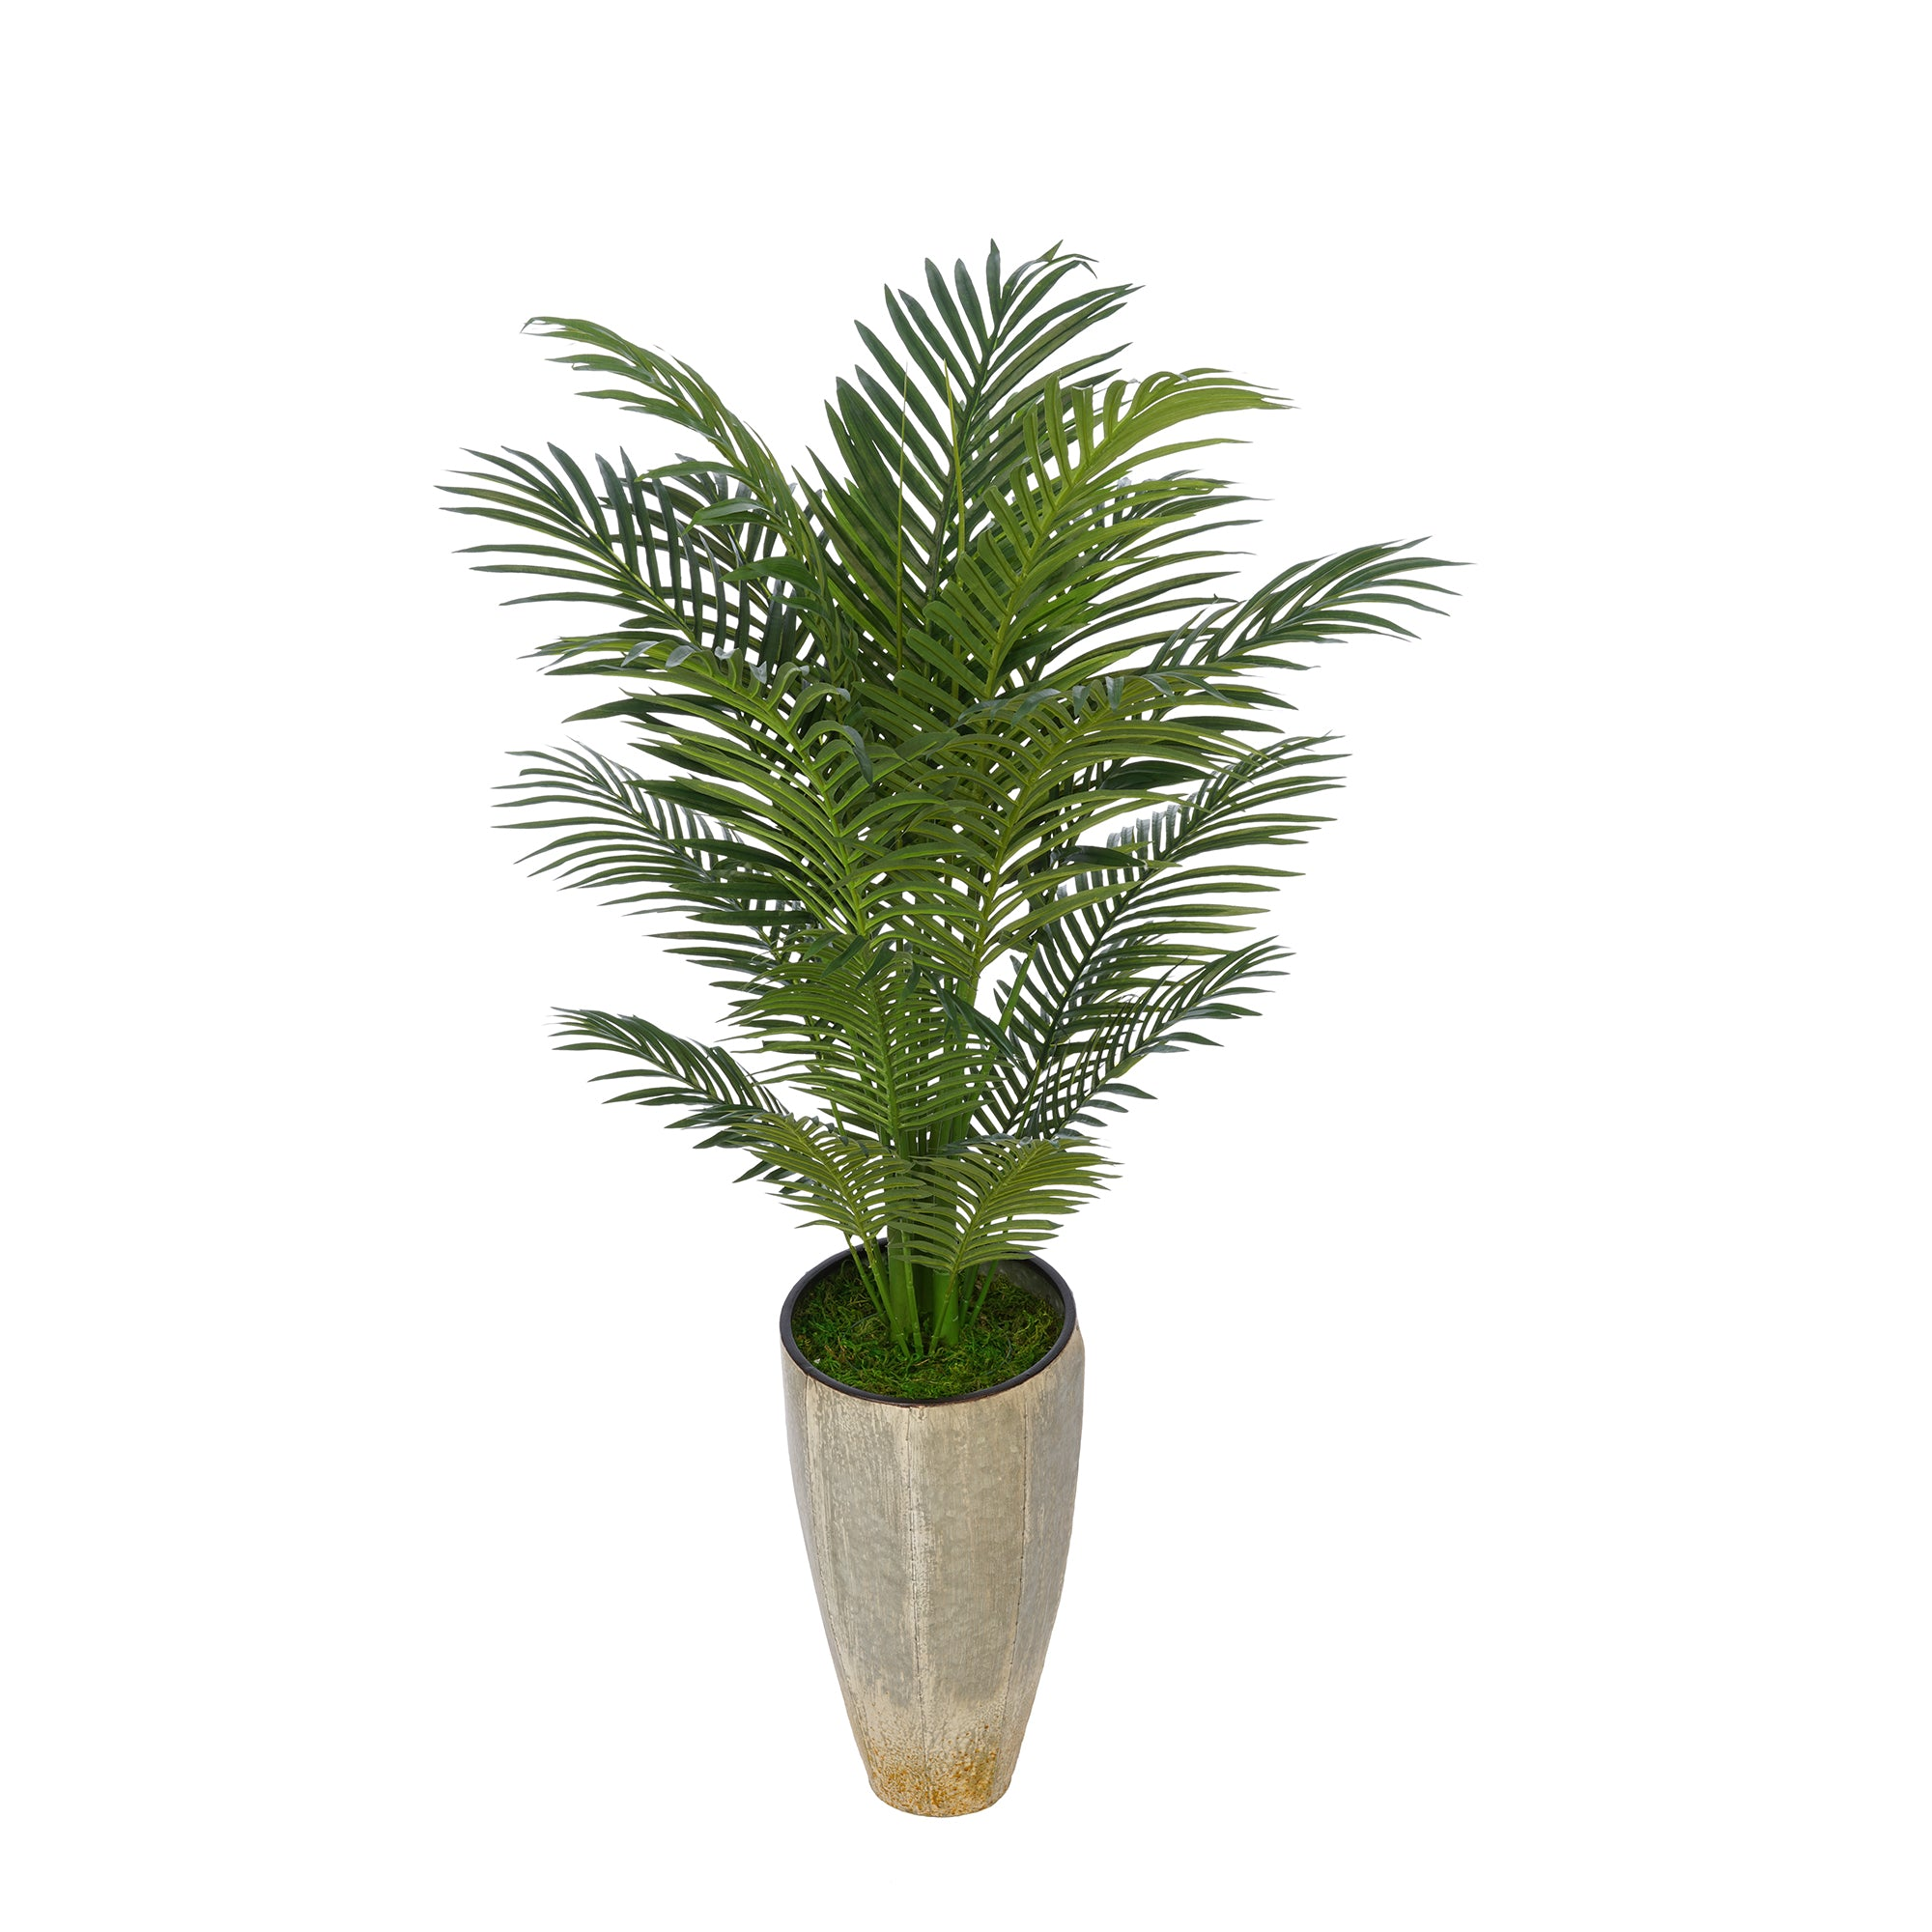 4-1/2 foot Areca Palm in Industrial Metal Planter House of Silk Flowers®